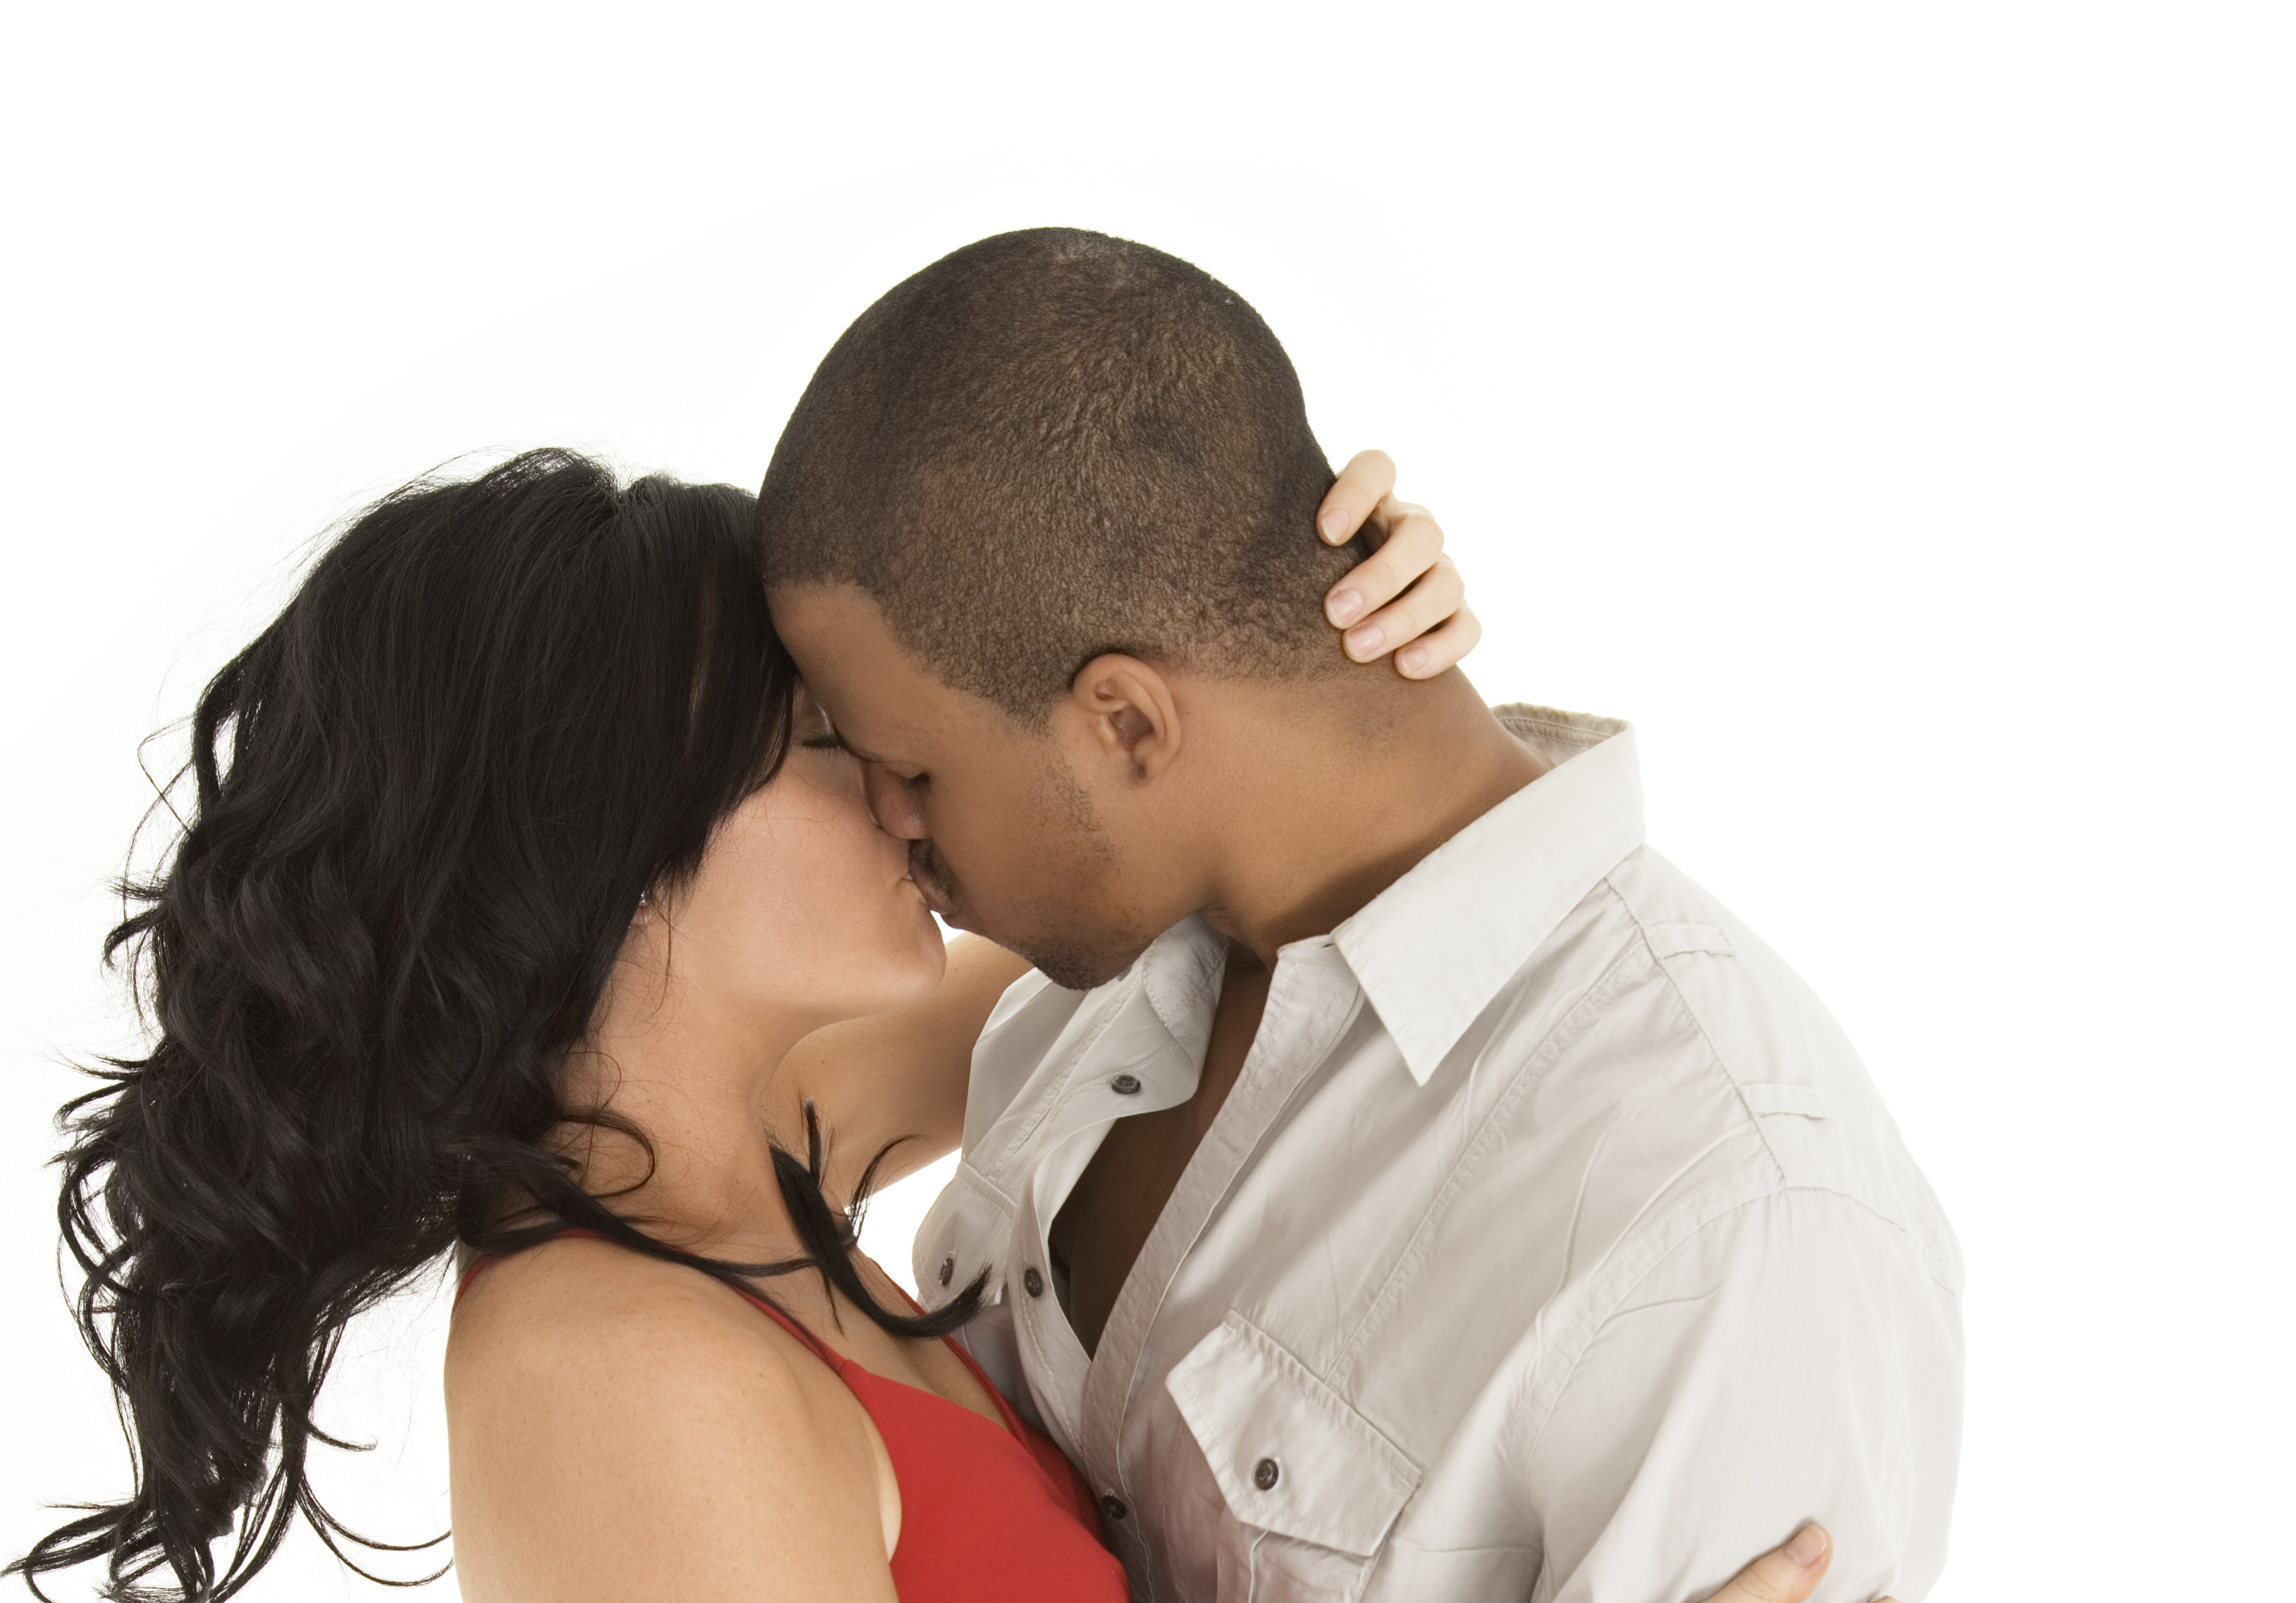 Interracial couples kissing and hugging